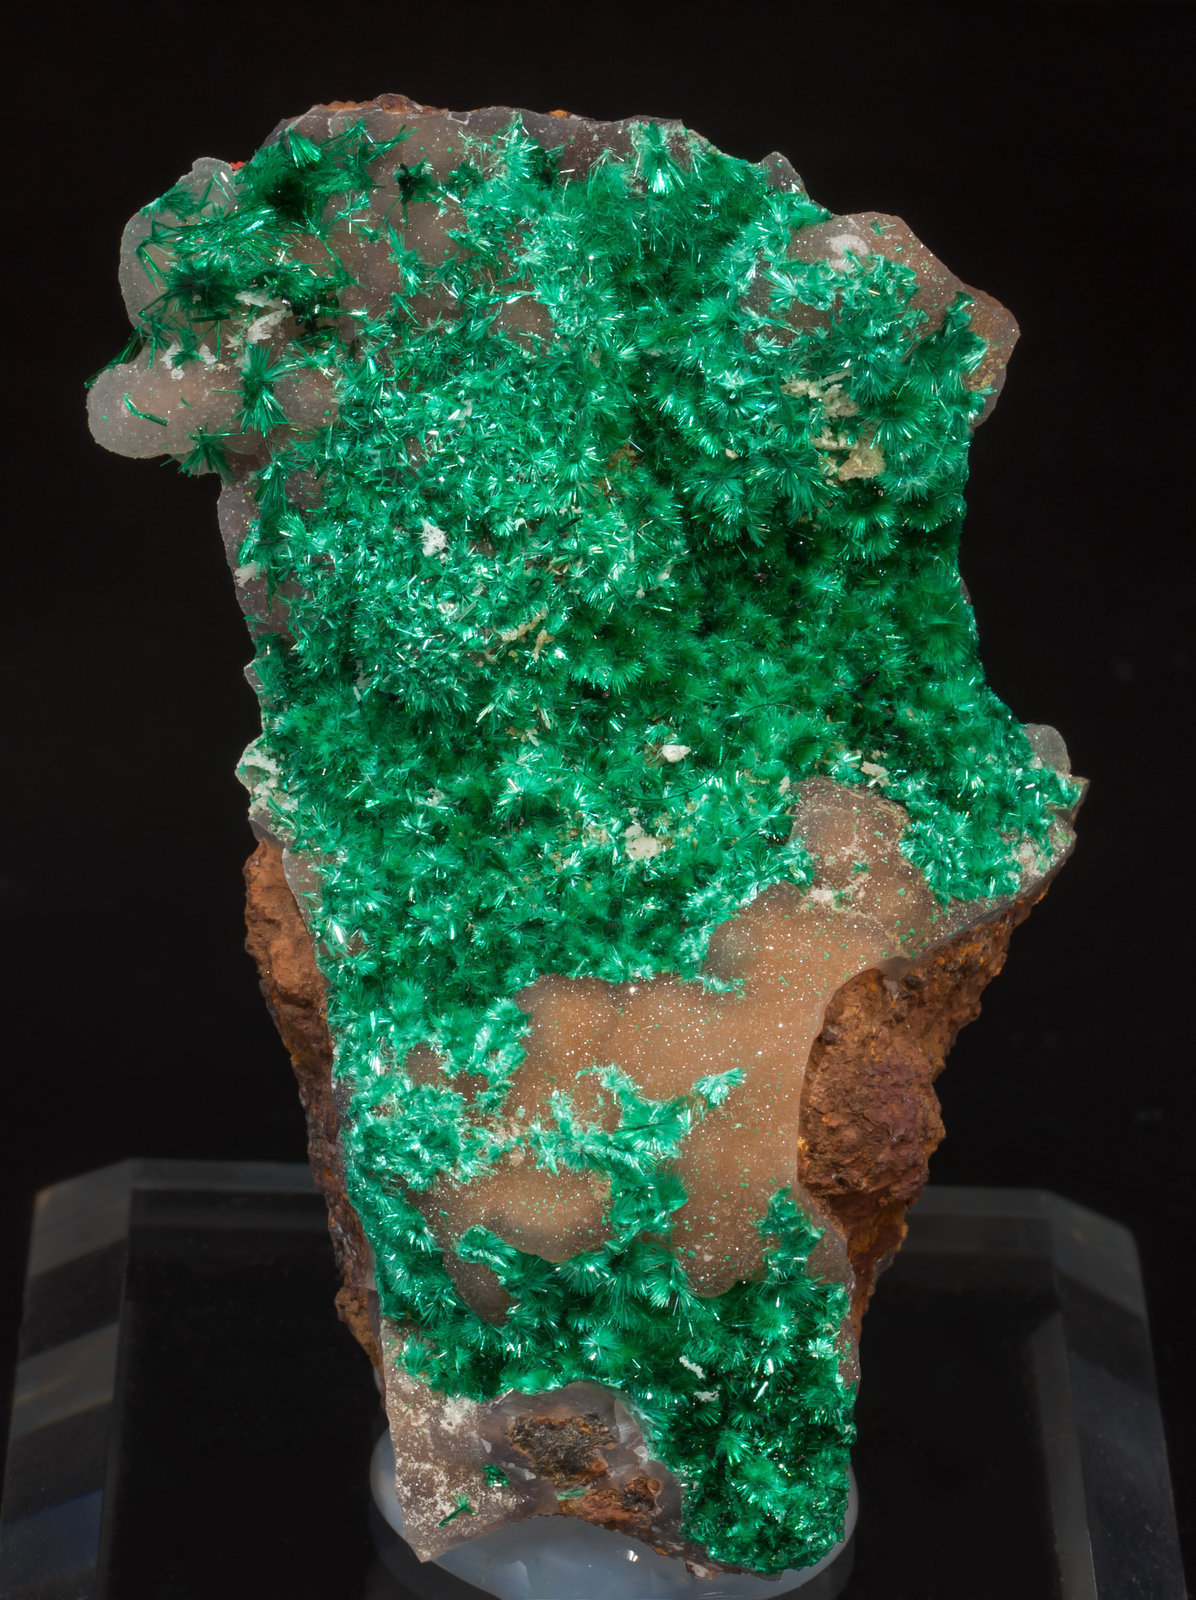 specimens/s_imagesAF0/Brochantite-MV56AF0f.jpg